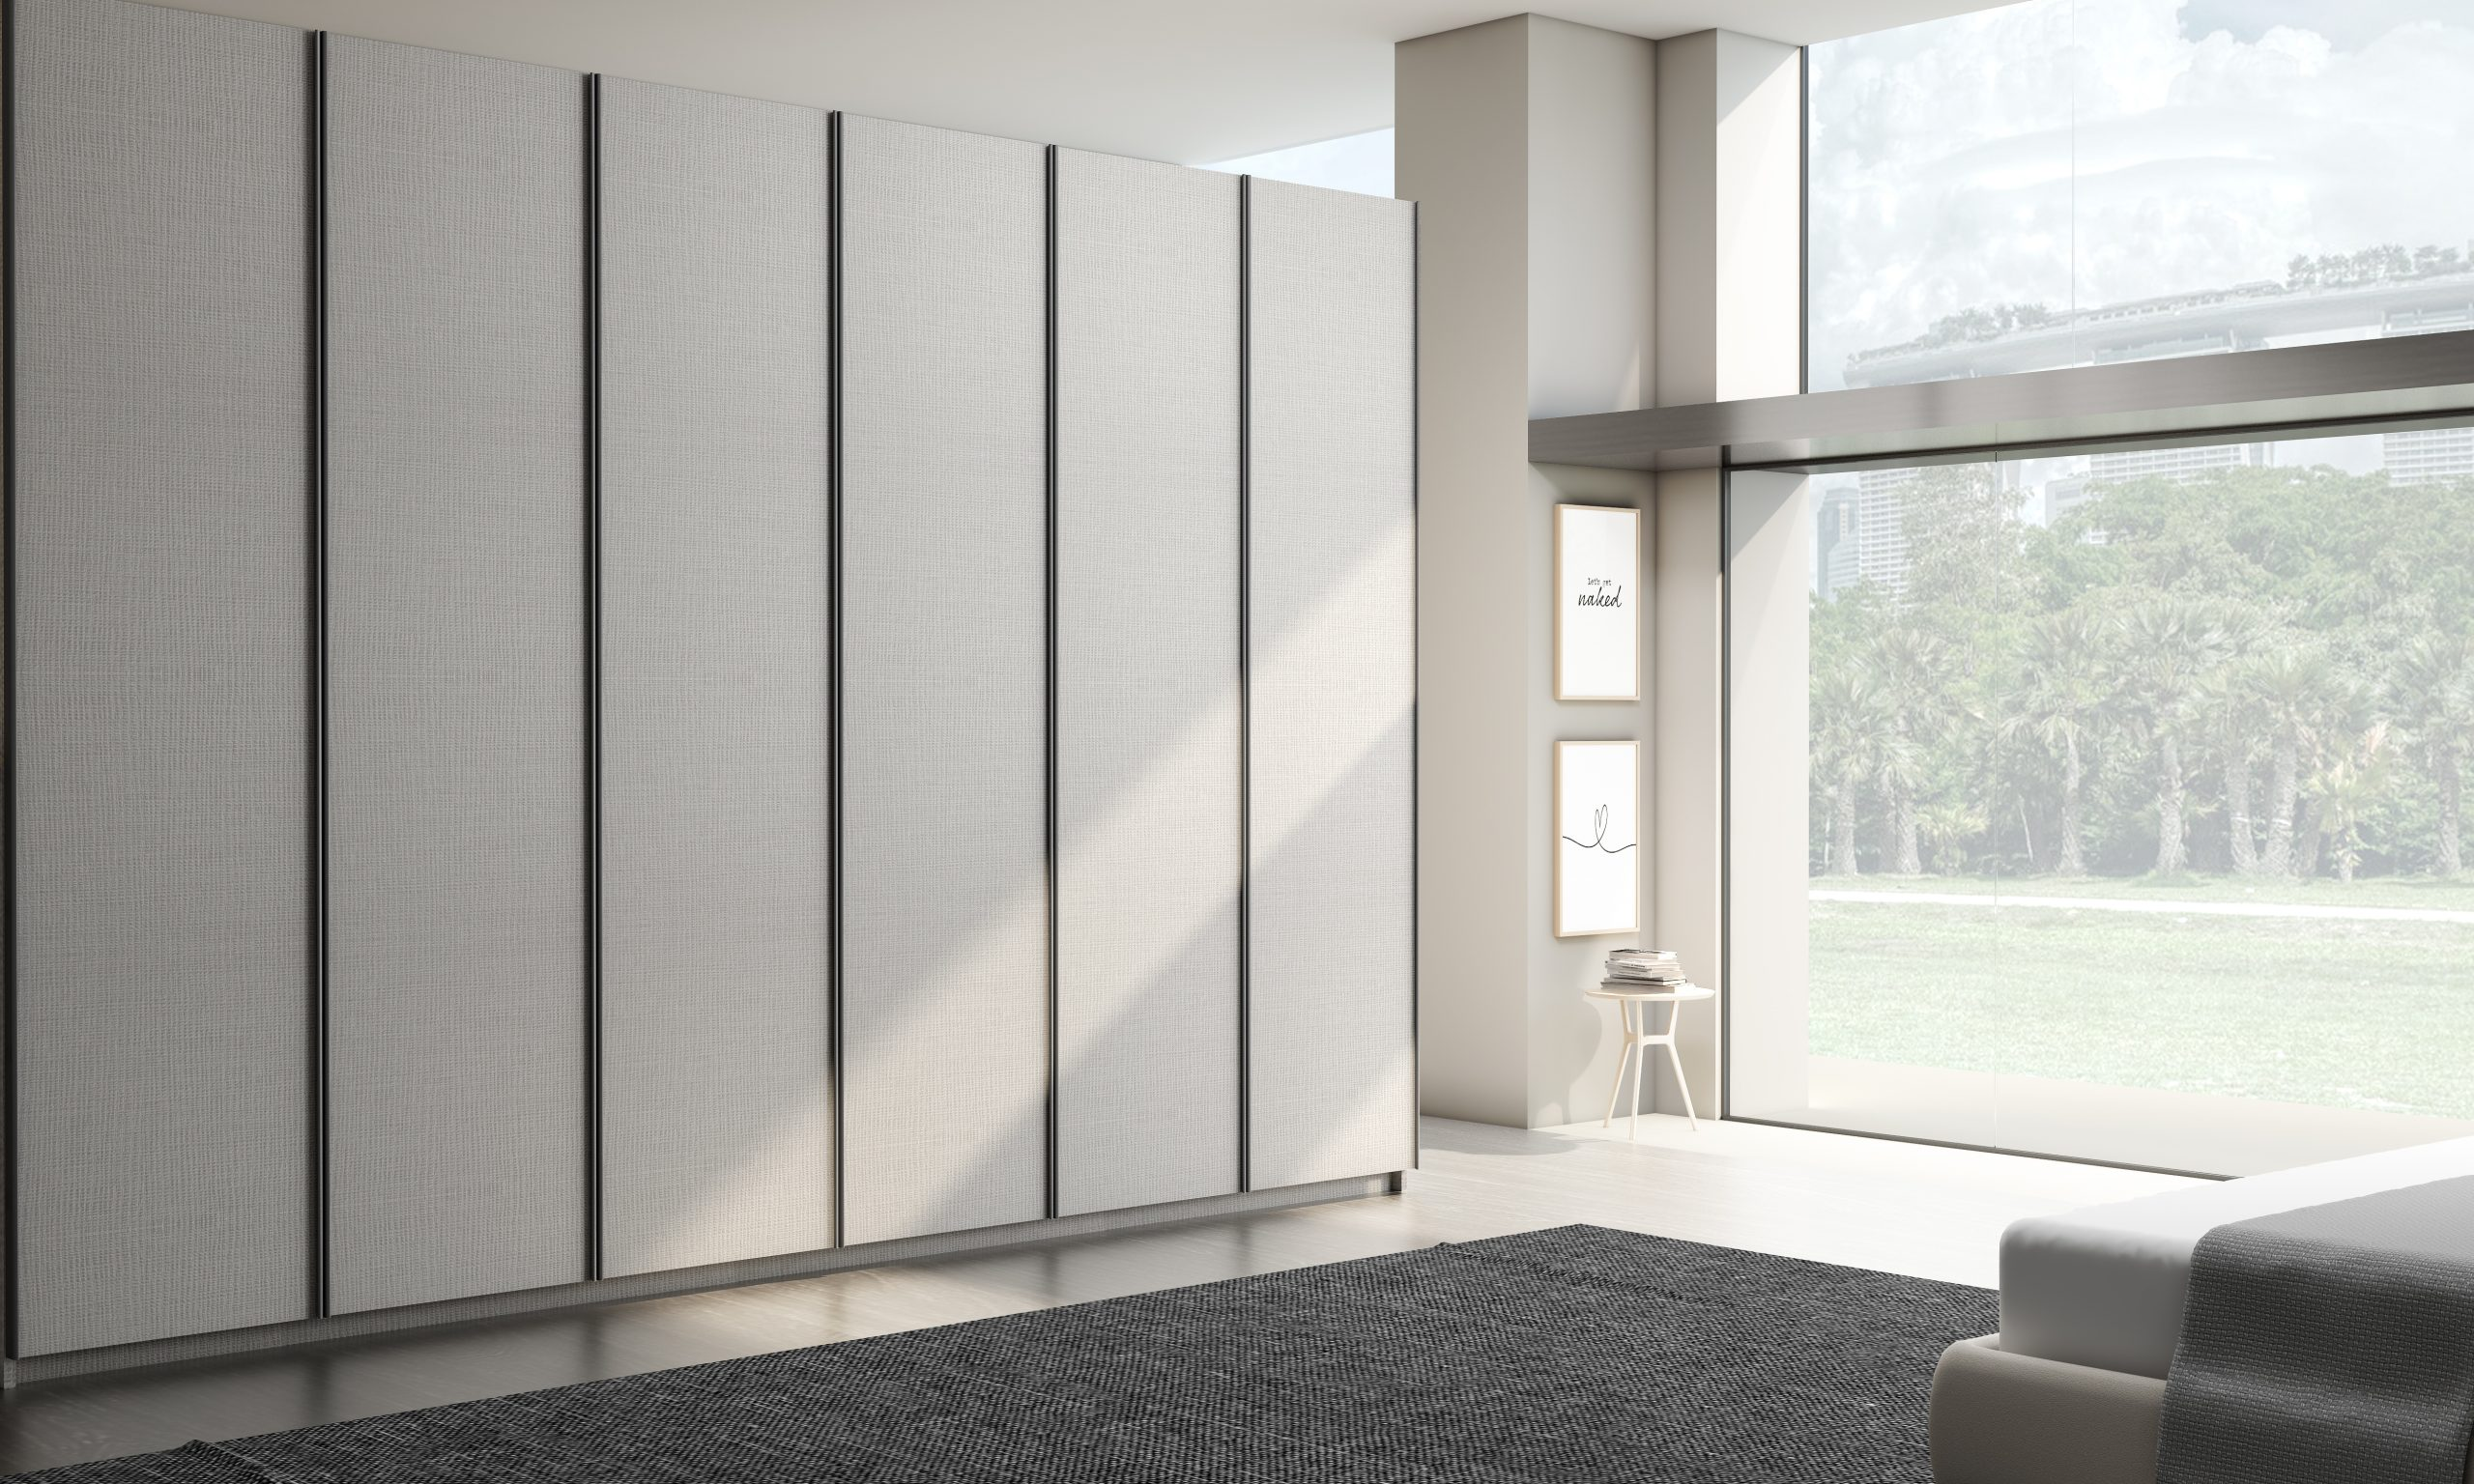 Linear Wood Fitted Hinged Wardrobe in Italian Textured Finish